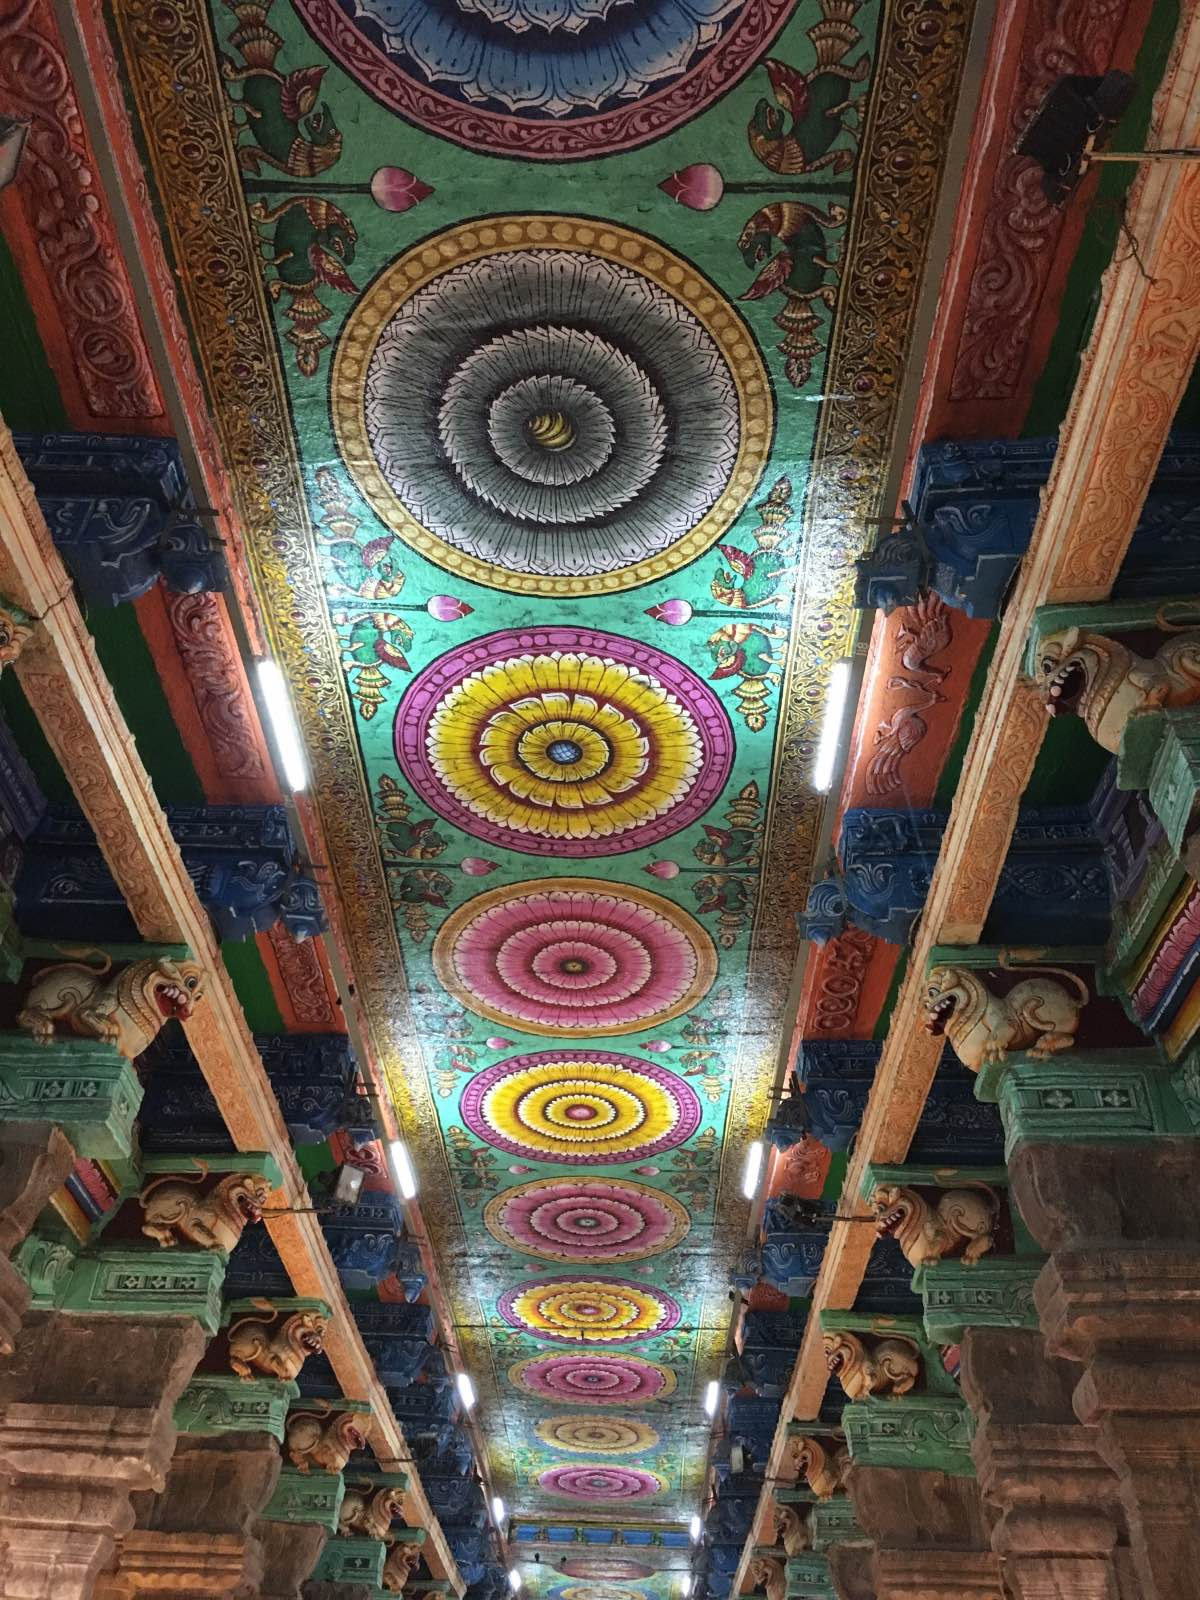 Painted ceilings at the Sri Meenakshi Temple complex in Madurai